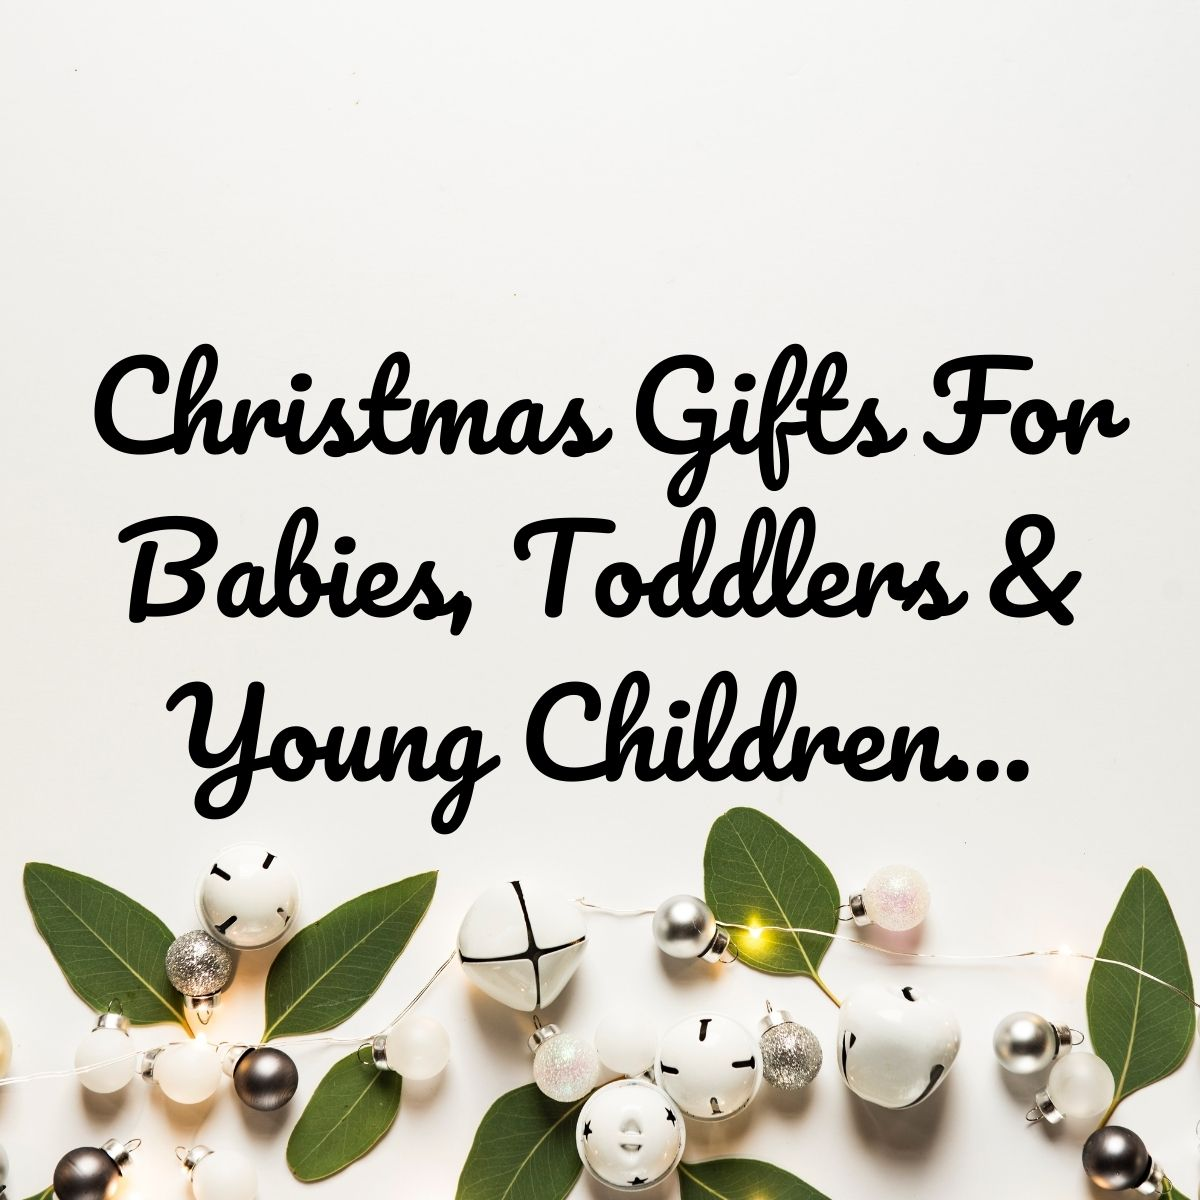 Christmas Gifts For Babies, Toddlers & Young Children 2020